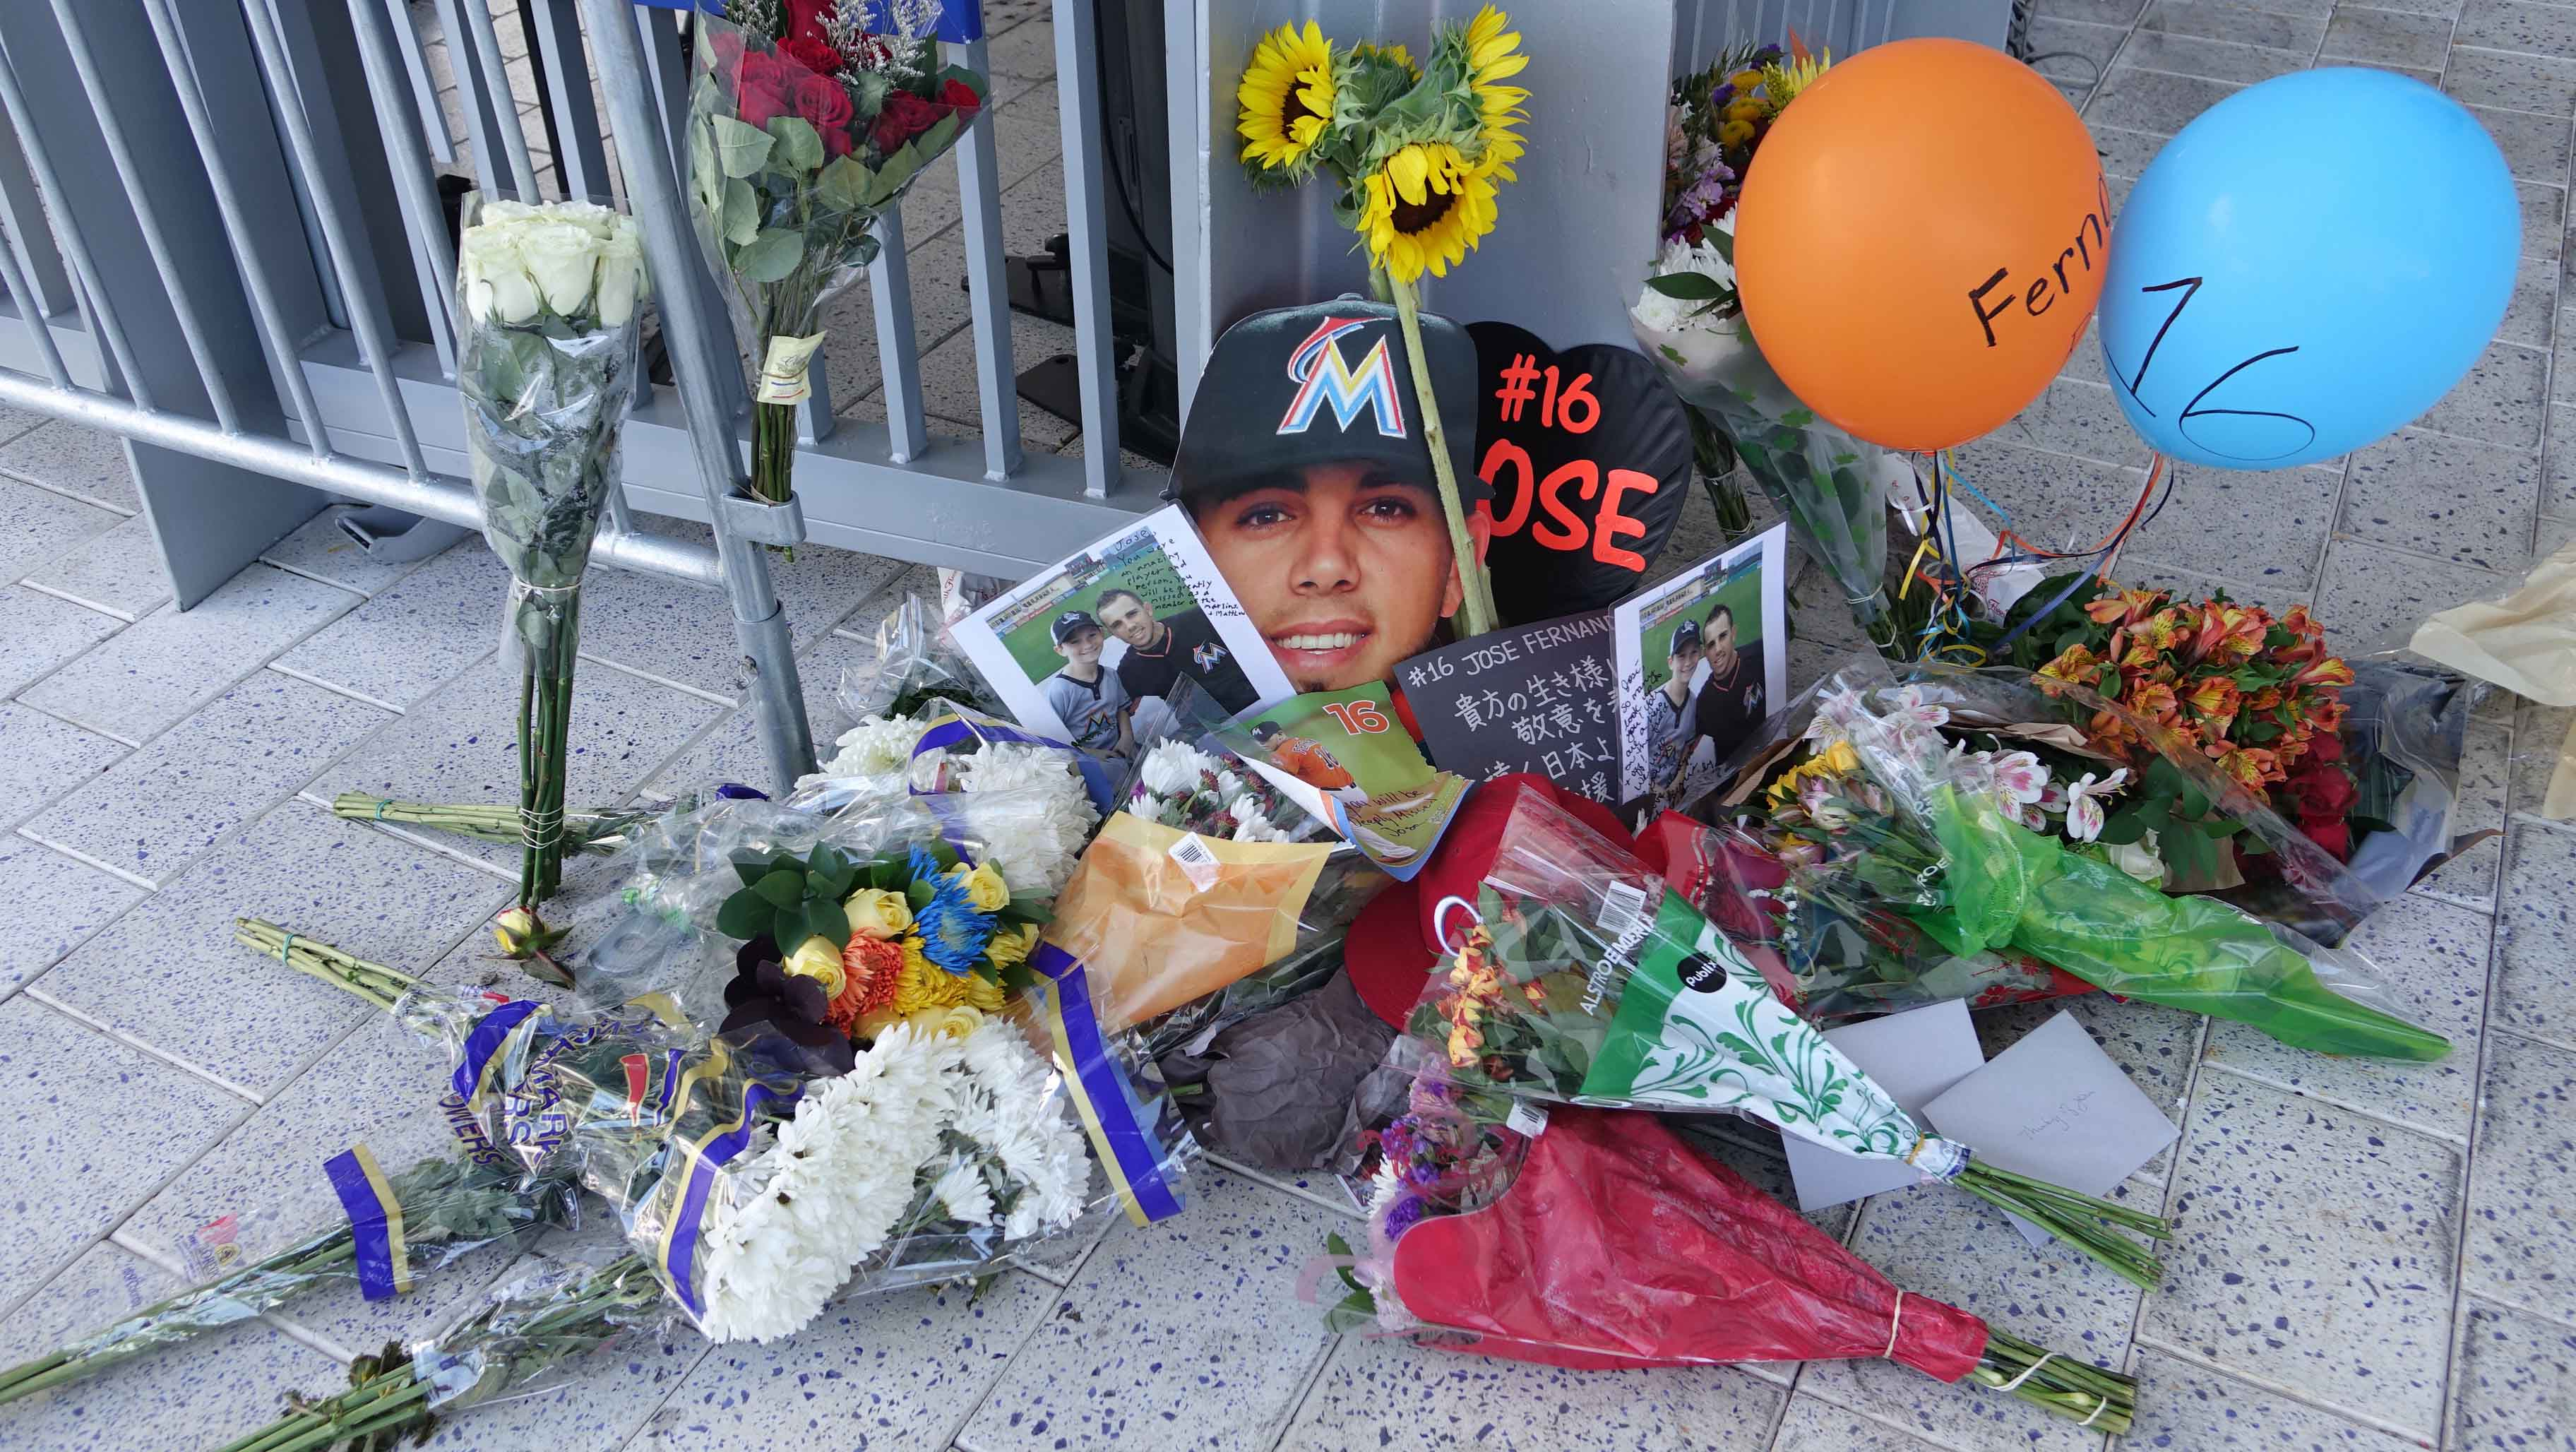 A memorial for Jose Fernandez takes shape at Marlins Park in Miami after the game against the Atlanta Braves was cancelled when Fernandez died in a boating accident, Sunday, Sept. 25, 2016, in Maimi Beach. (Joe Caveretta/Sun Sentinel/TNS)